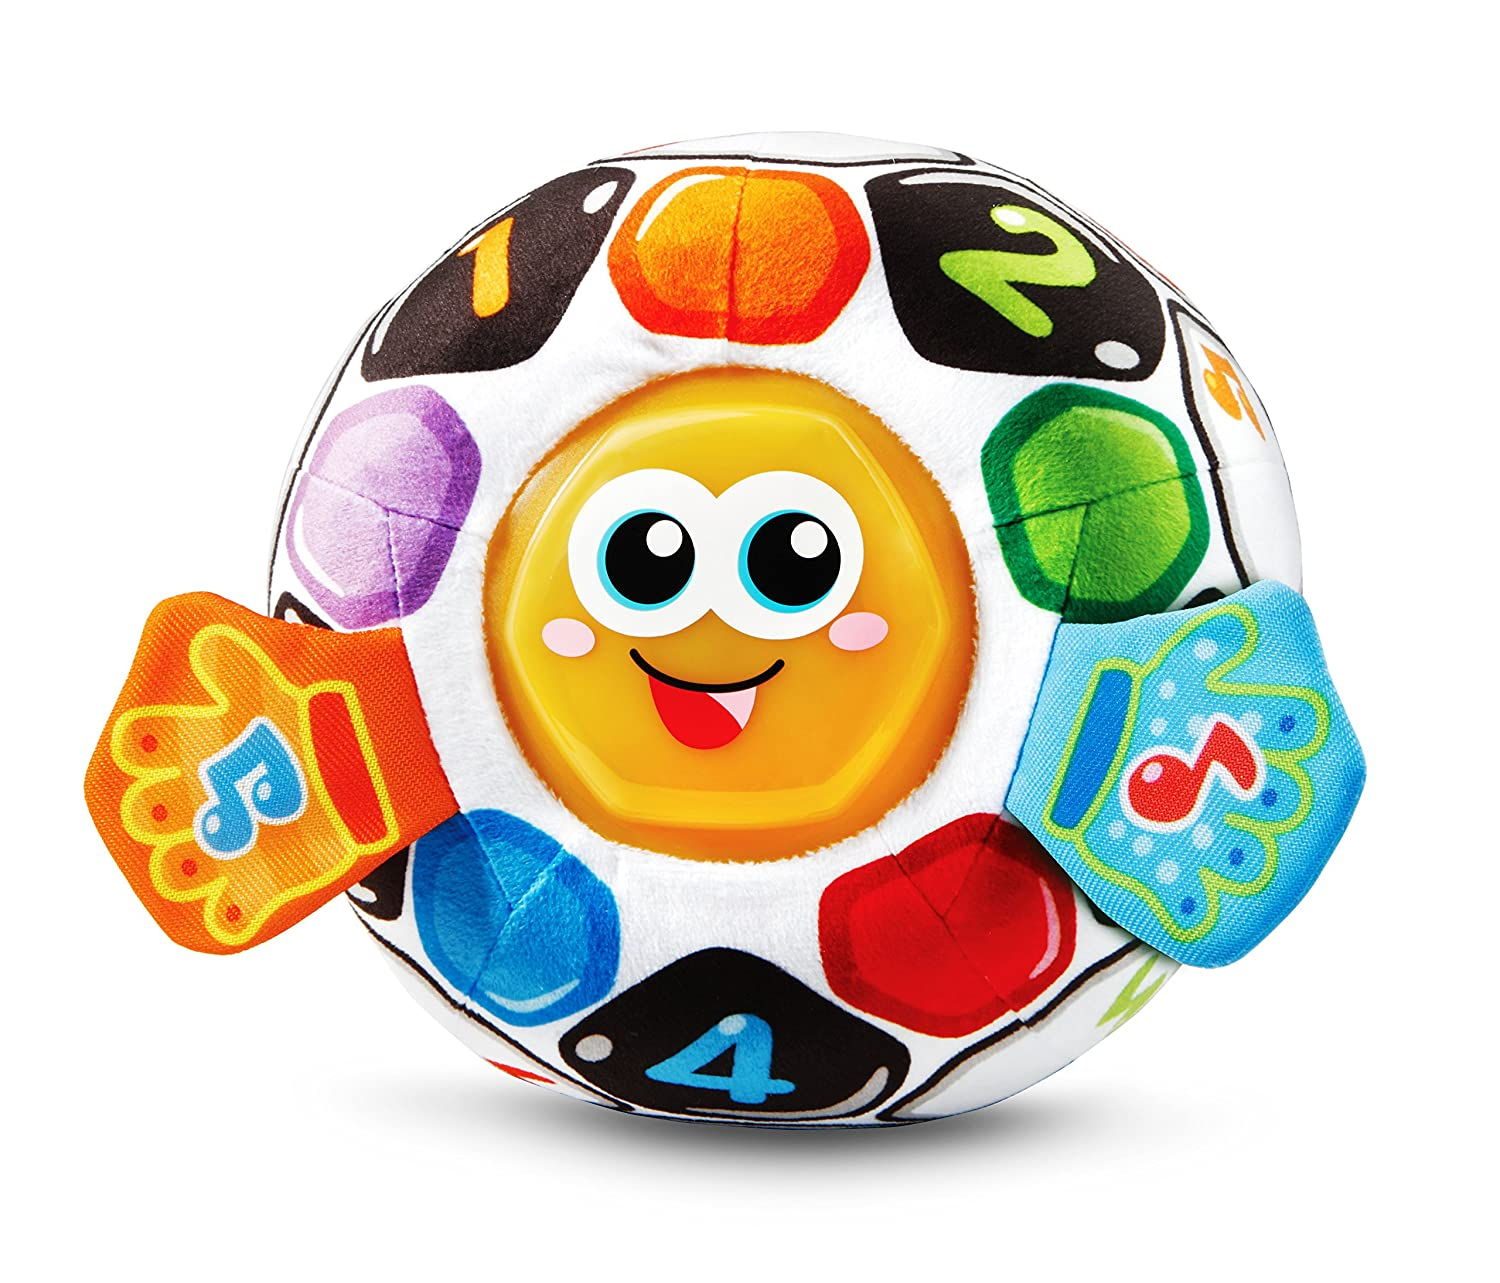 VTech Bright Lights Soccer Ball V Tech 80-509100